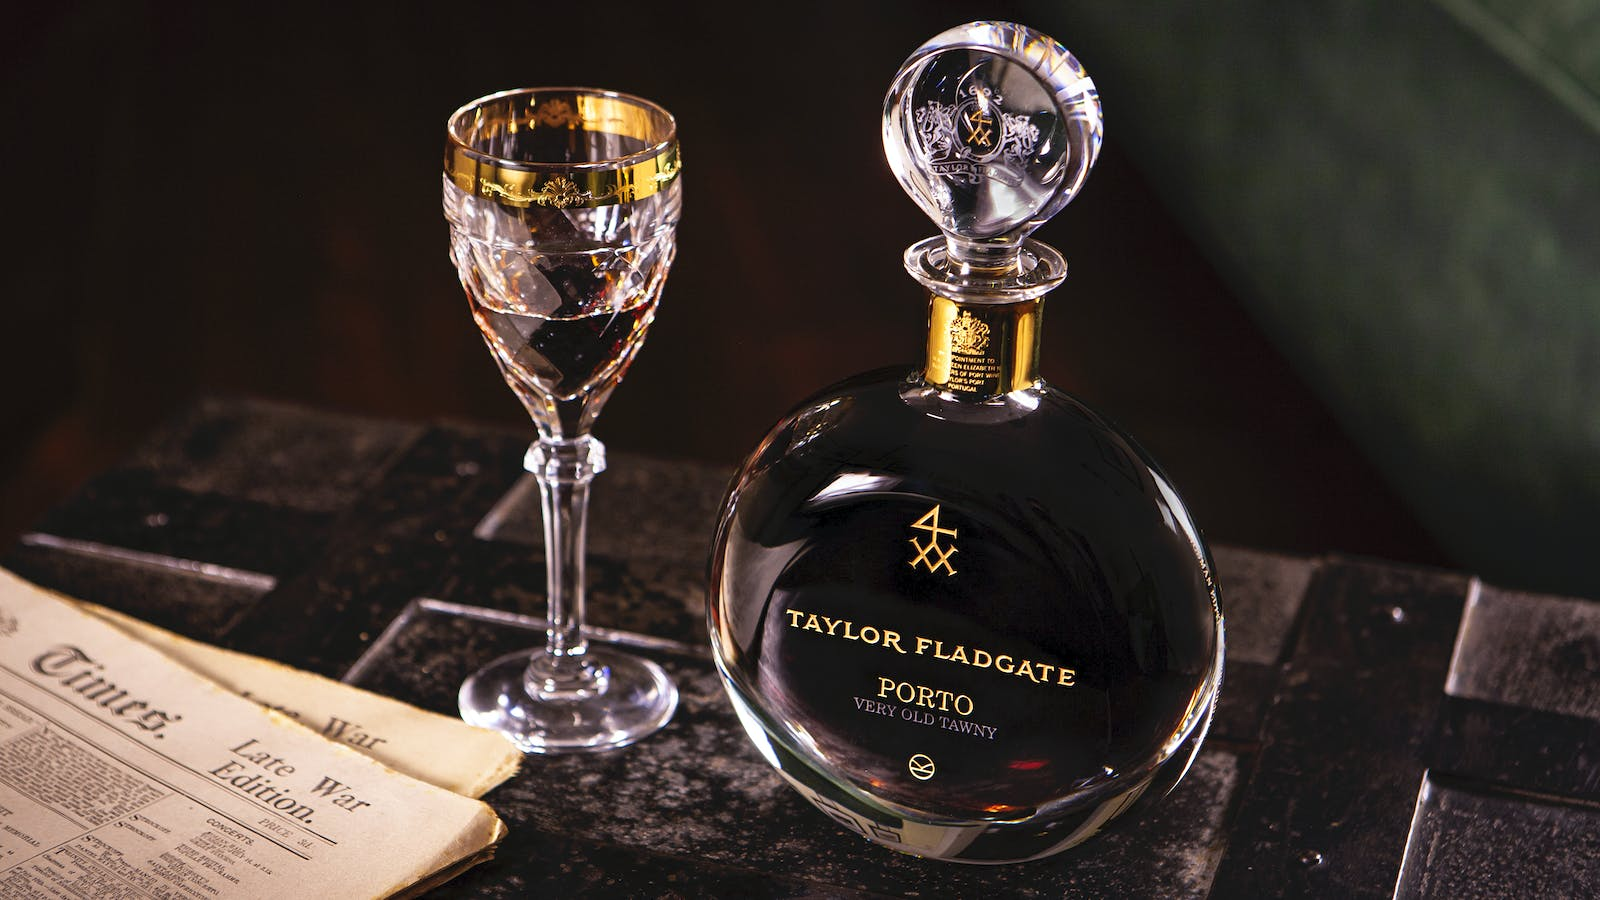 A Gentleman's Pour: Taylor Fladgate and New 'Kingsman' Film Launch 90-Year-Old Port